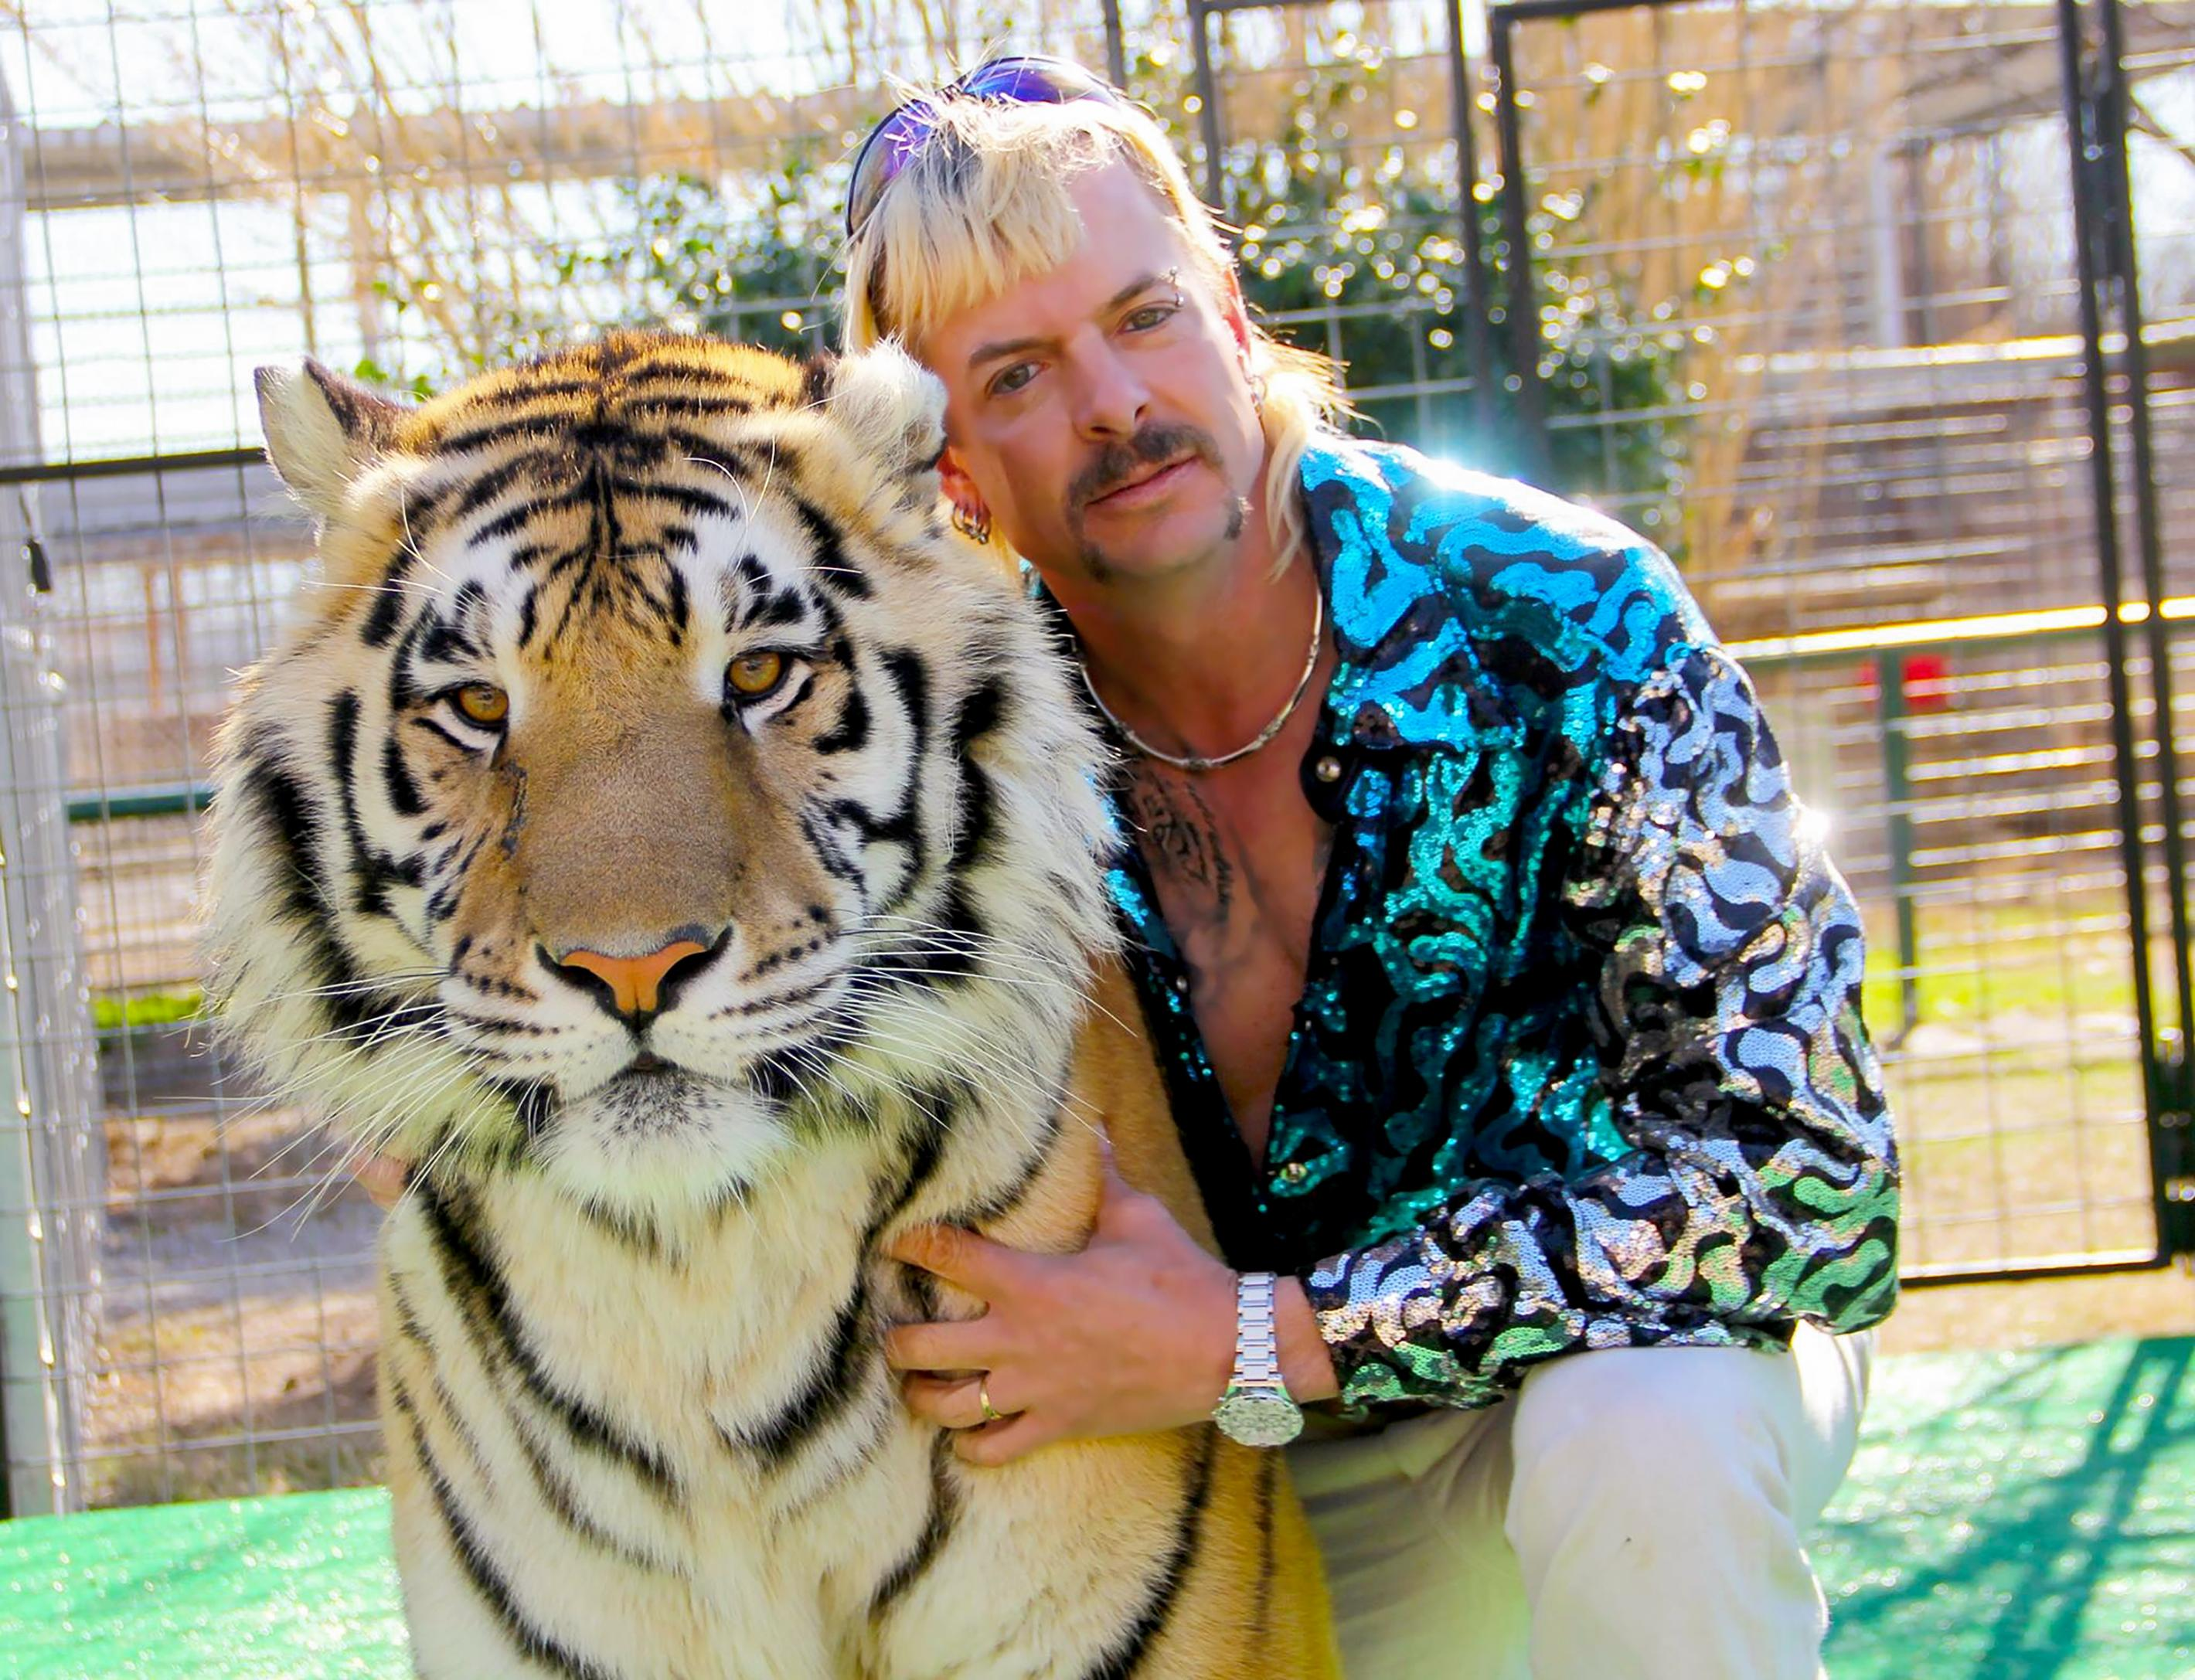 Joe Exotic Of 'Tiger King' Asks Donald Trump To Pardon Him